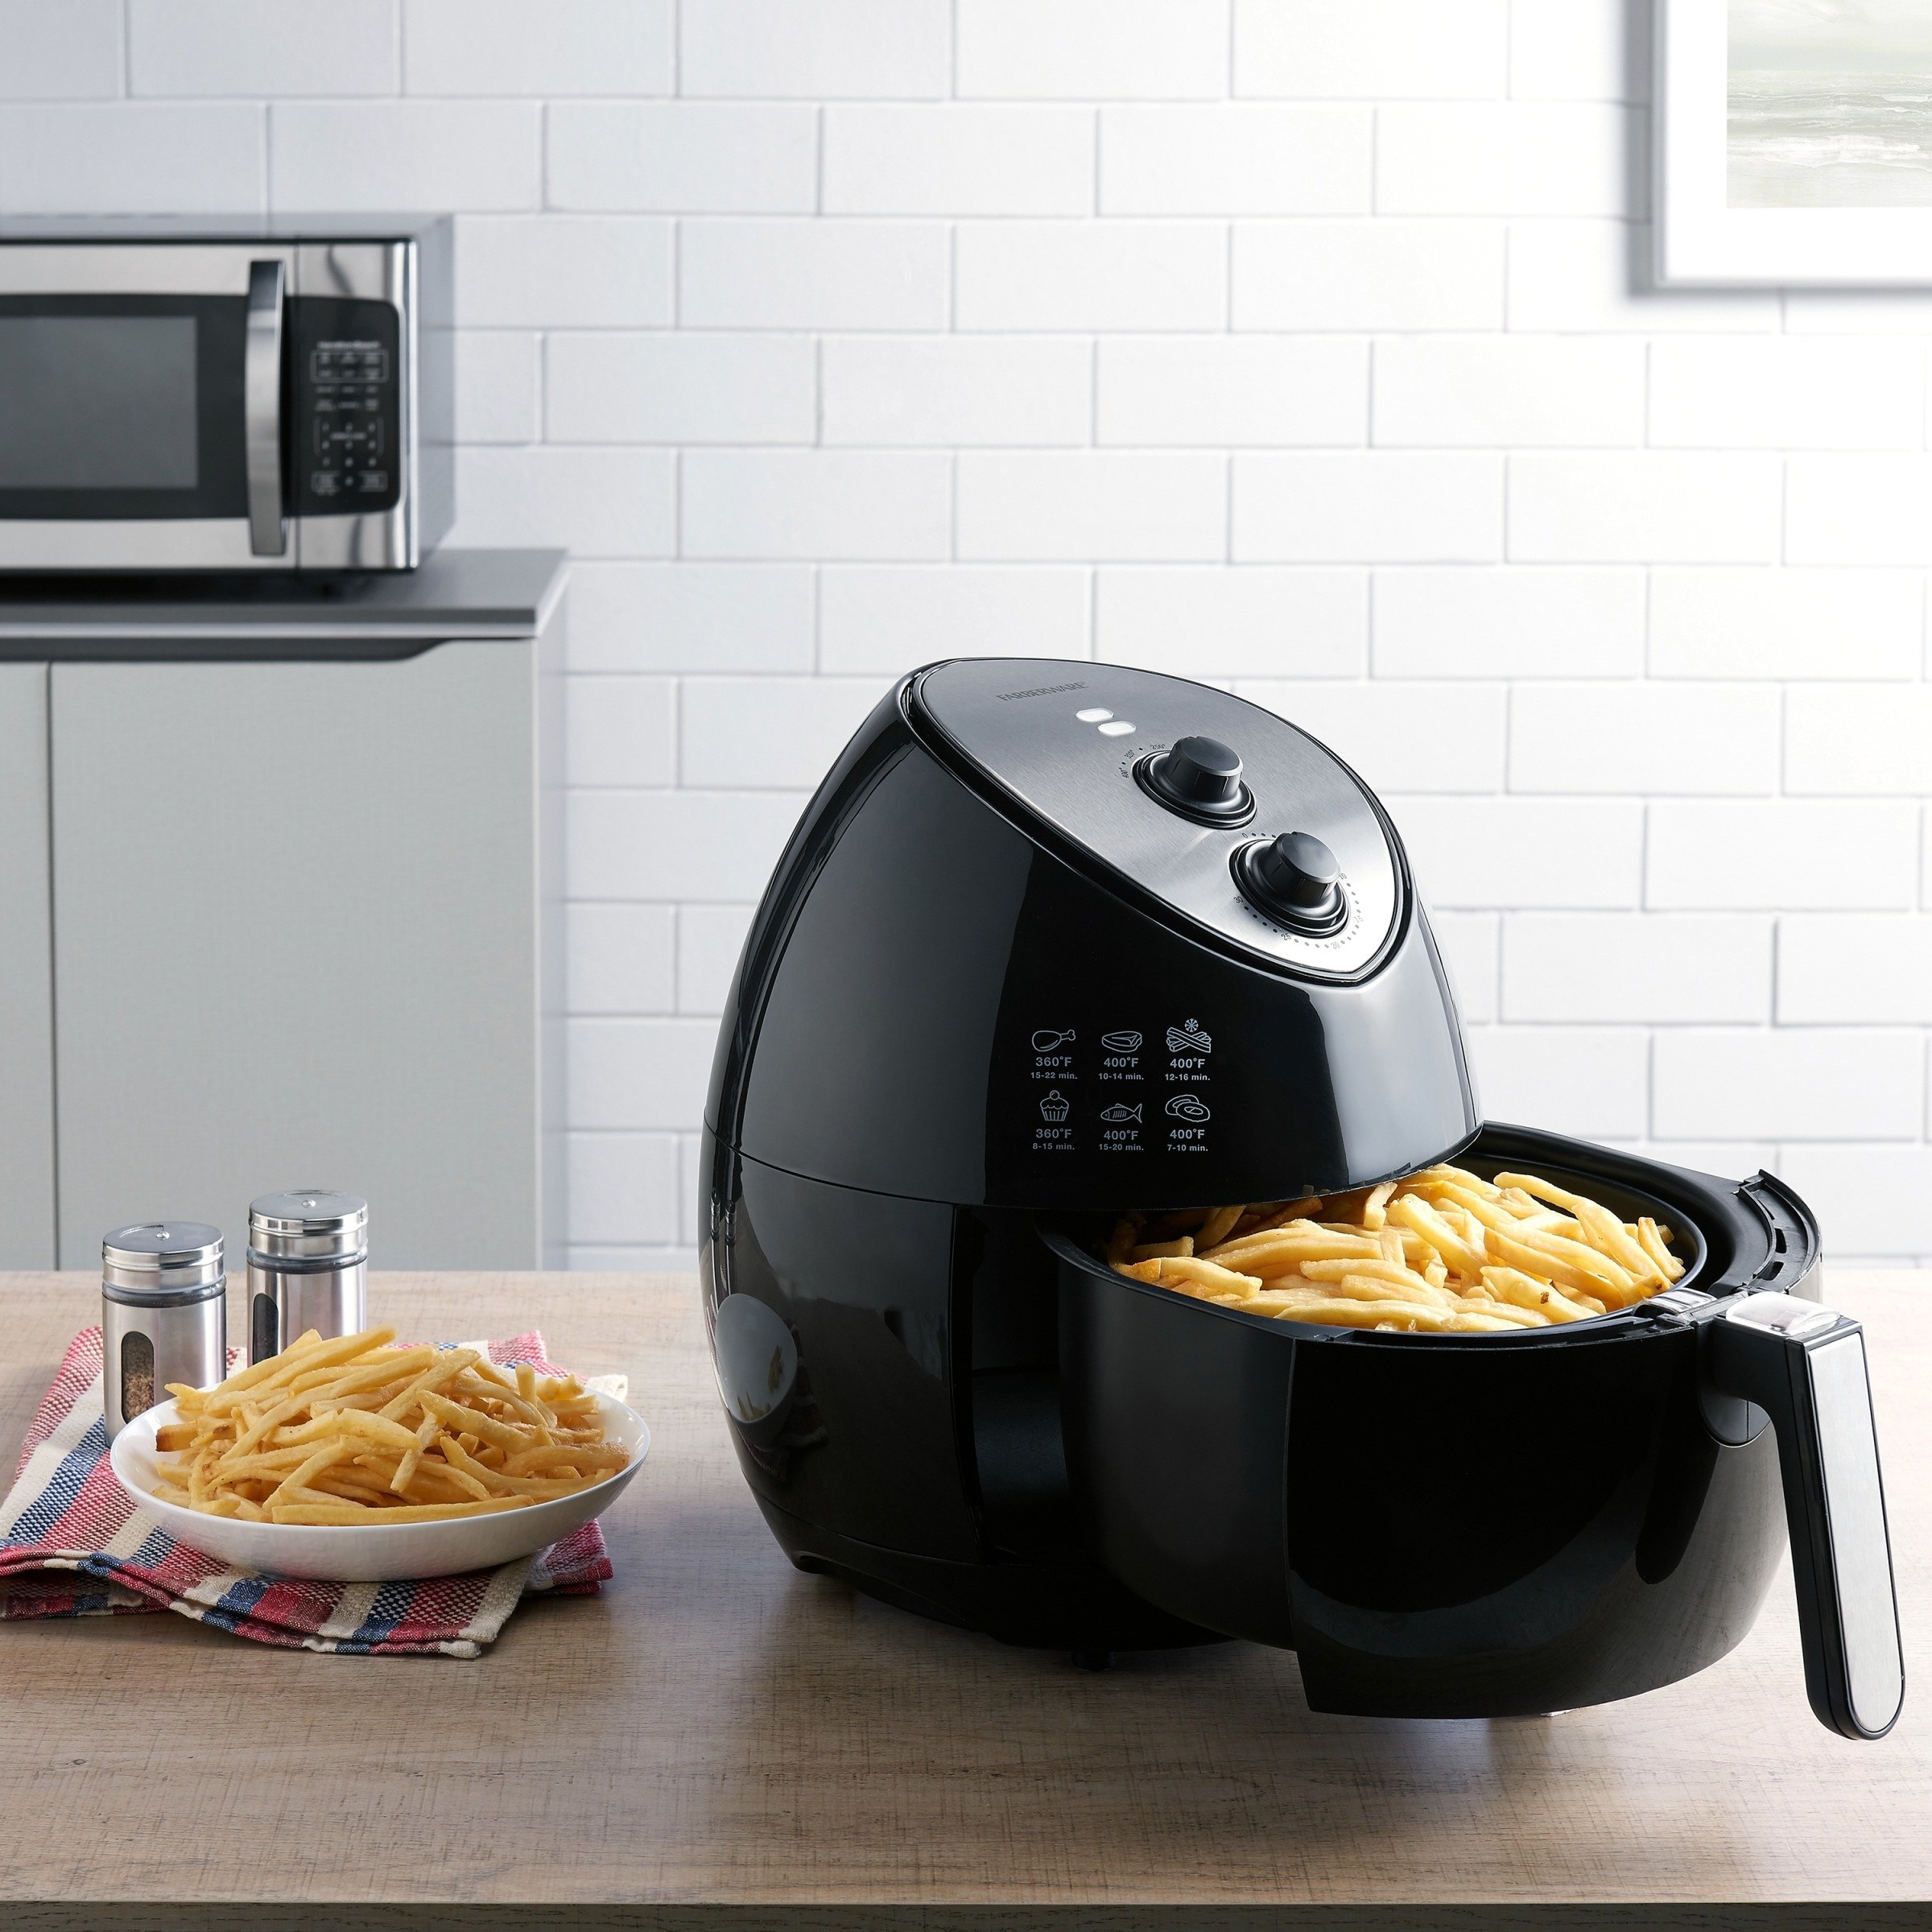 the airfryer in the color black with french fries inside of it